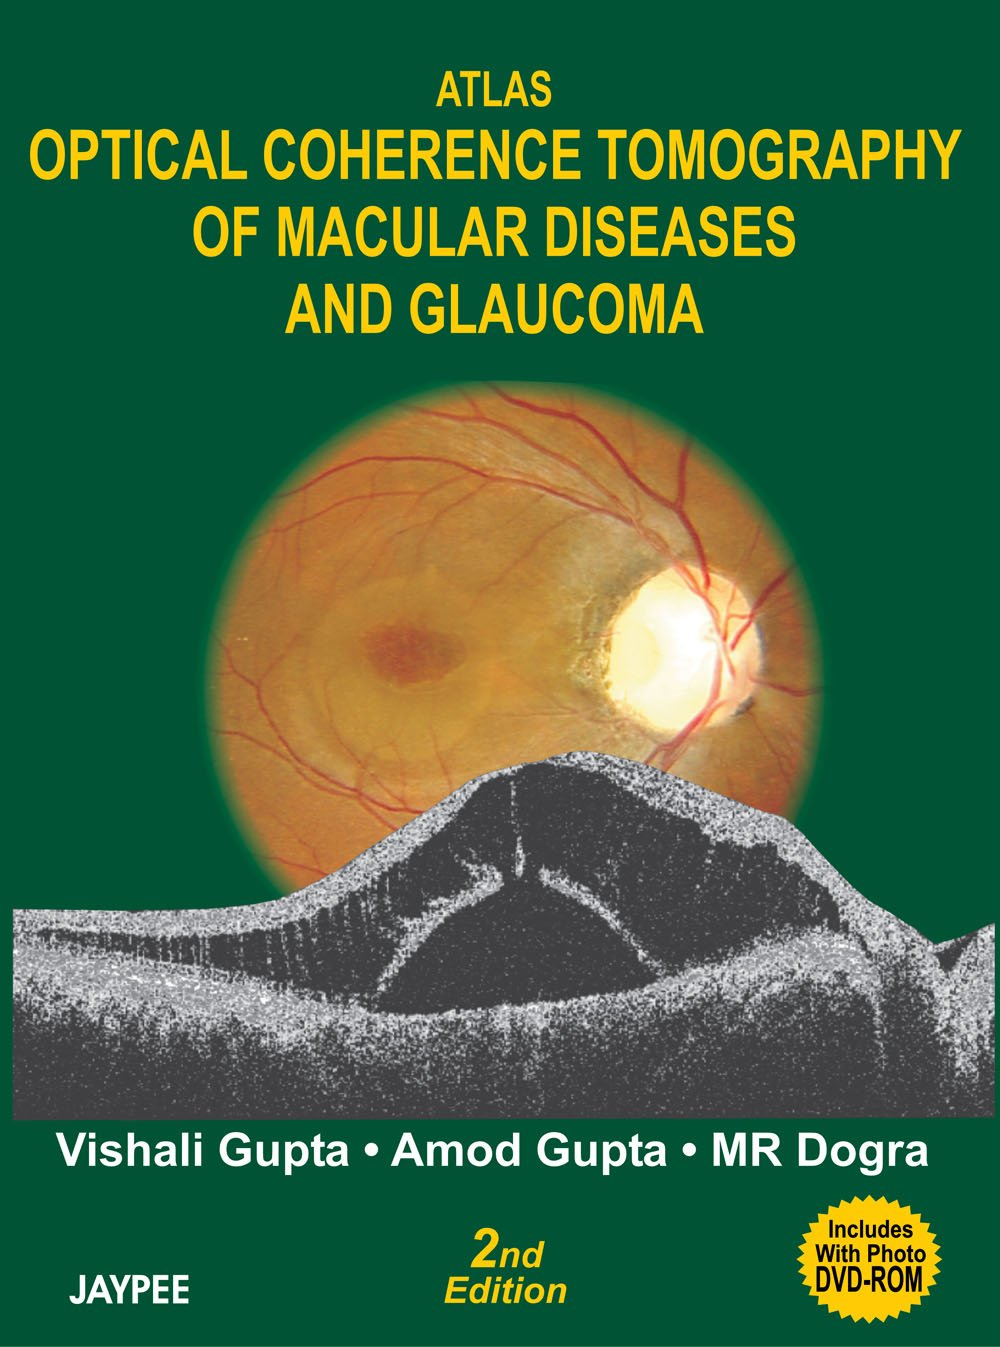 Atlas Optical Coherence Tomography of Macular Diseases and Glaucoma PDF